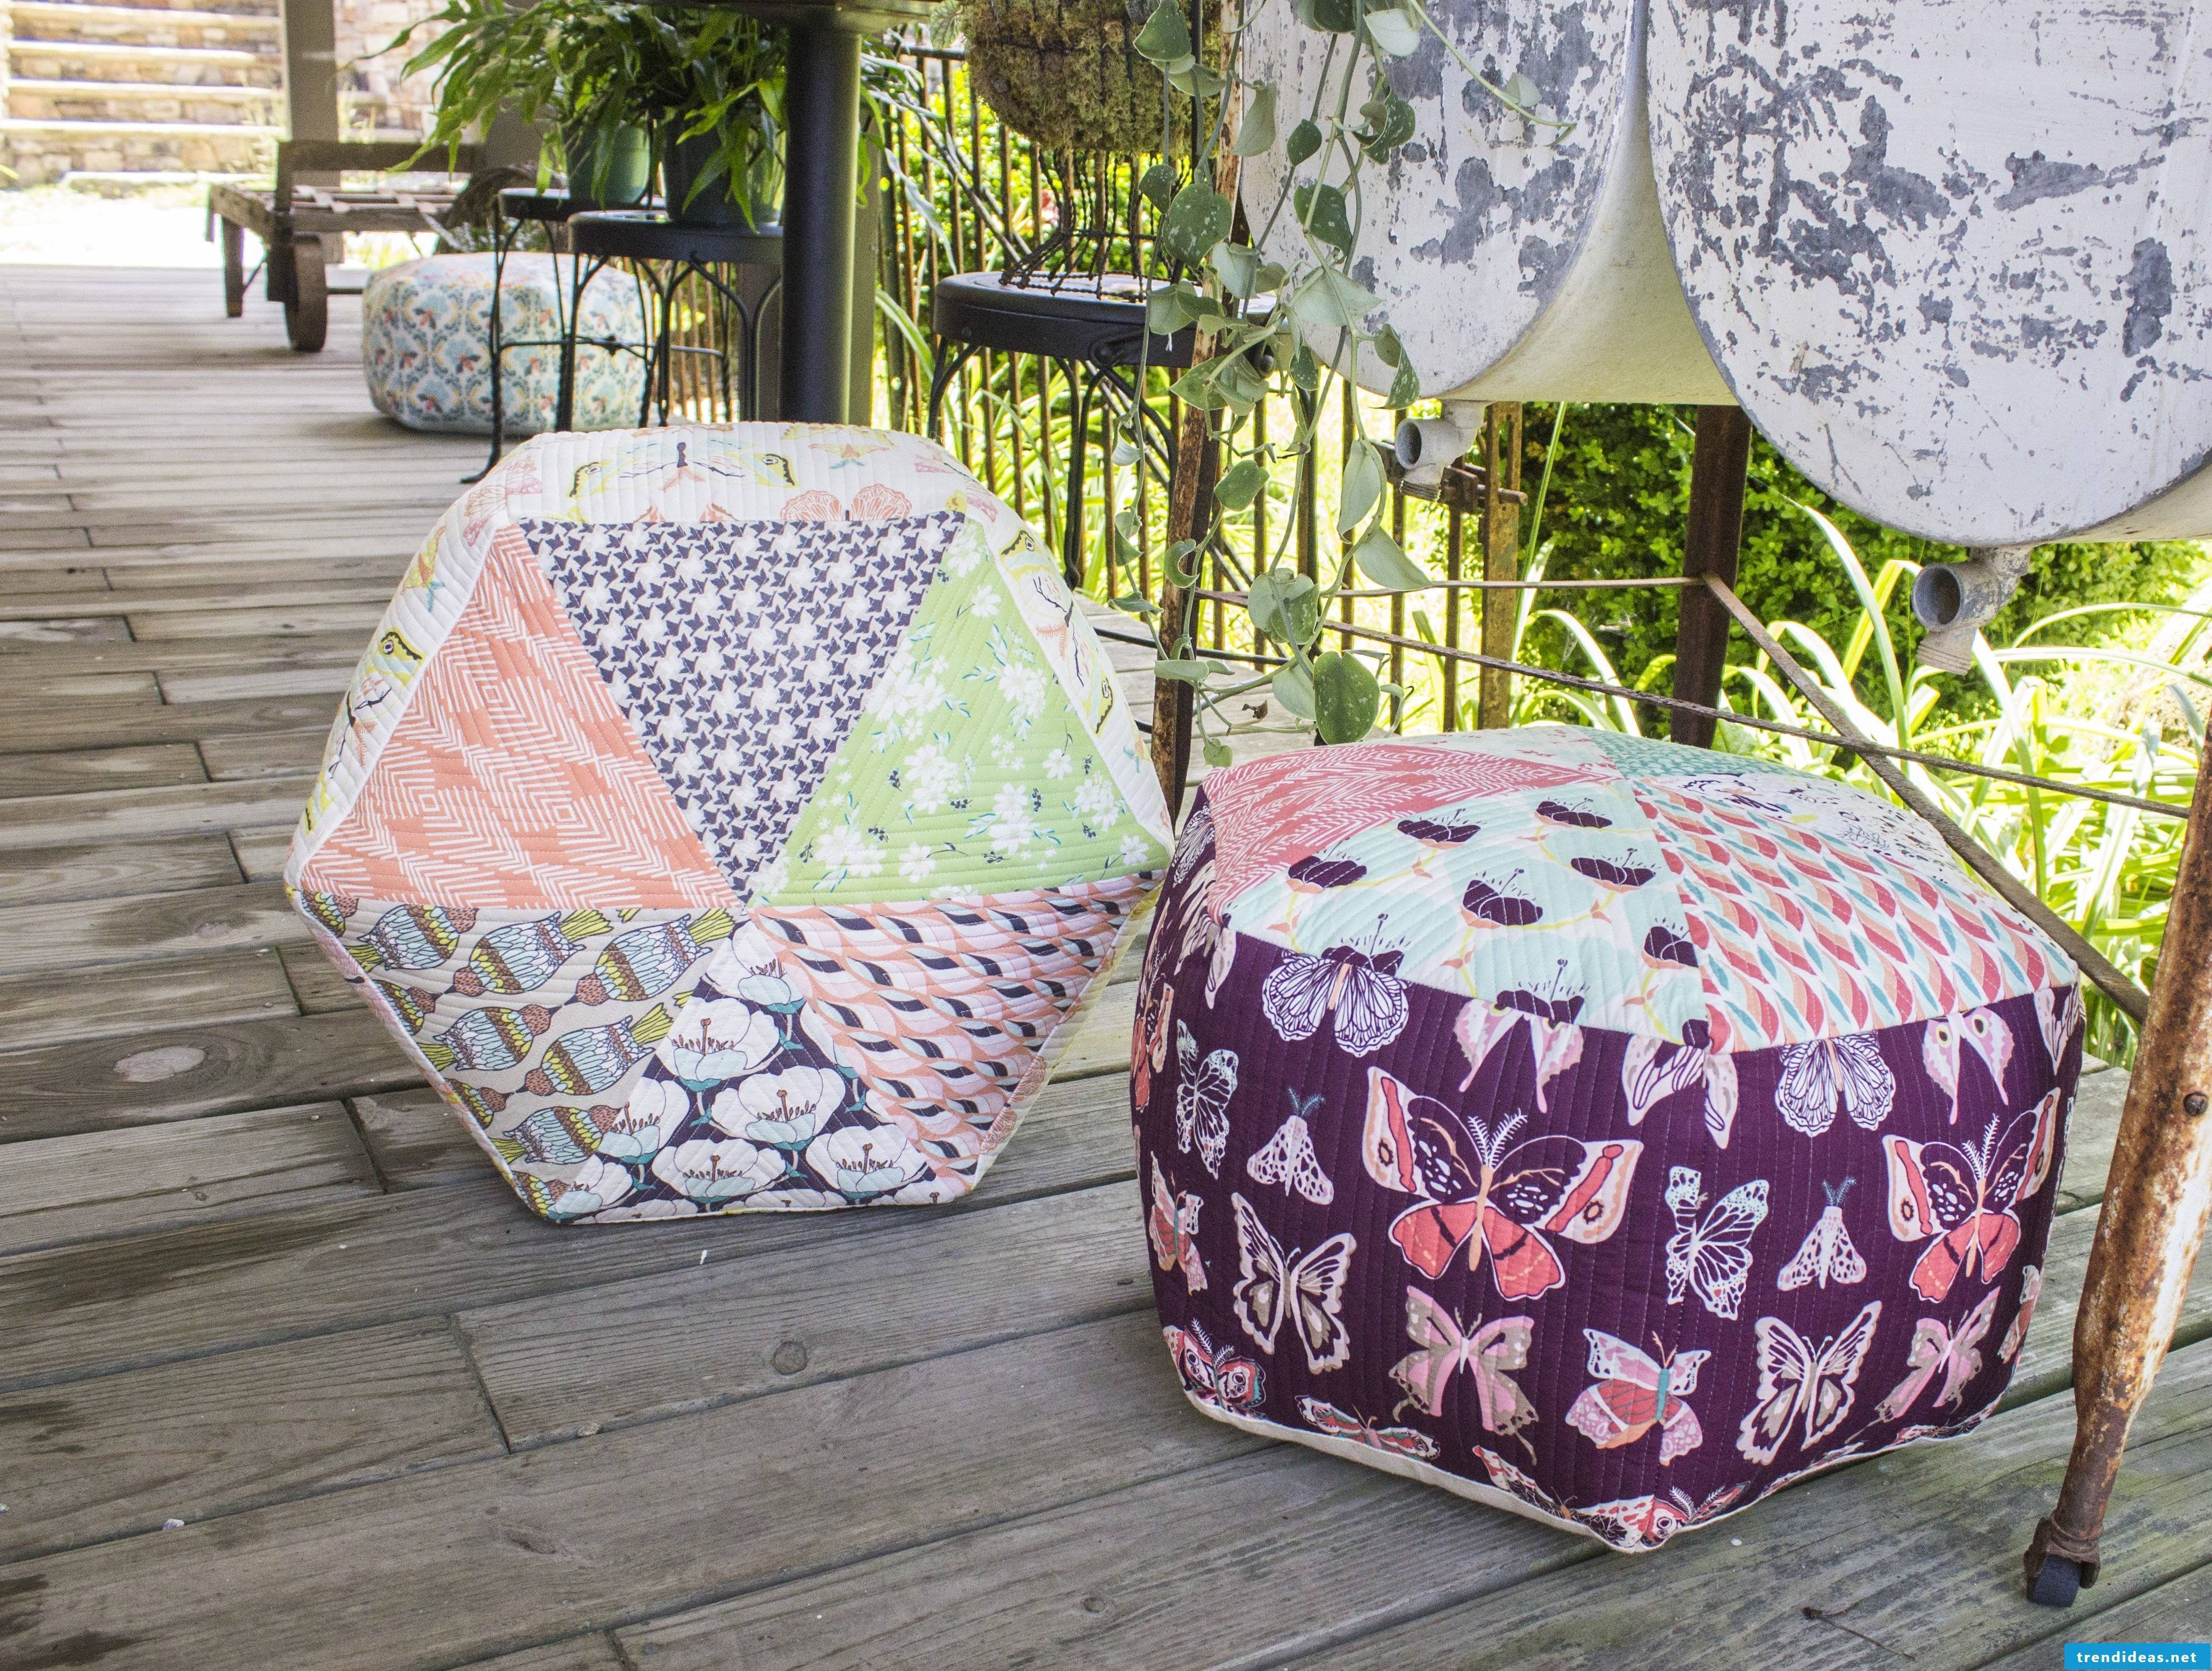 Seat cushion for sewn, suitable for balcony, garden and home